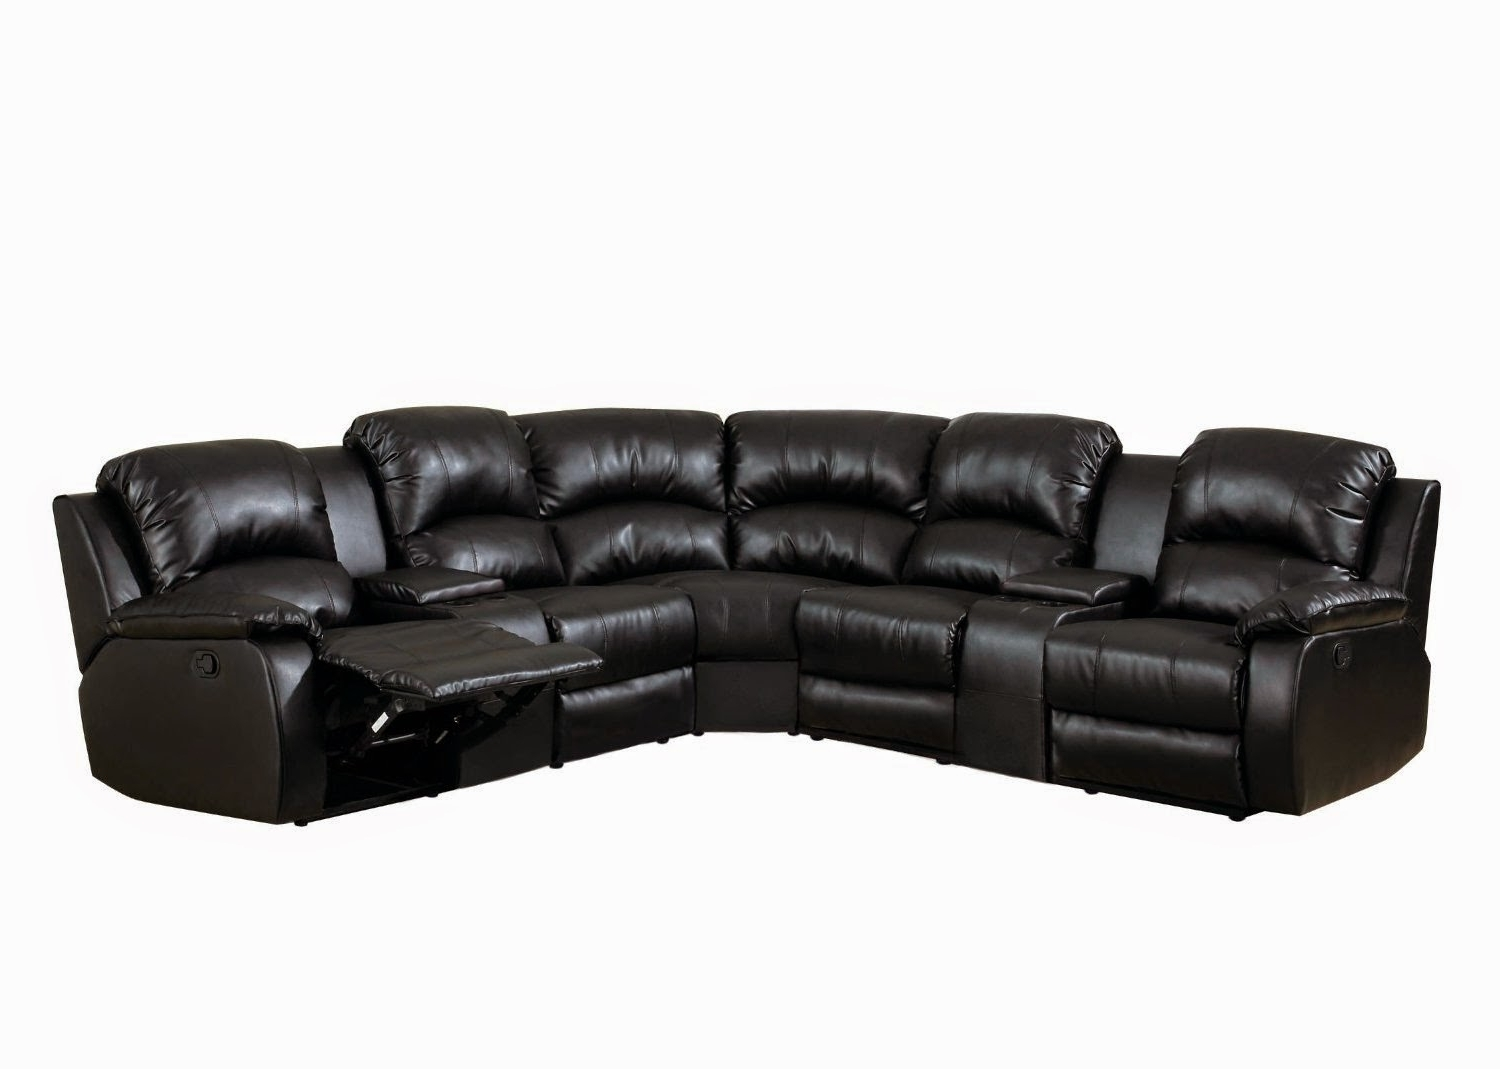 Economax Sectional Sofas In Well Known Black Leather Reclining Loveseat. Optimus Power Reclining Loveseat (Gallery 14 of 15)